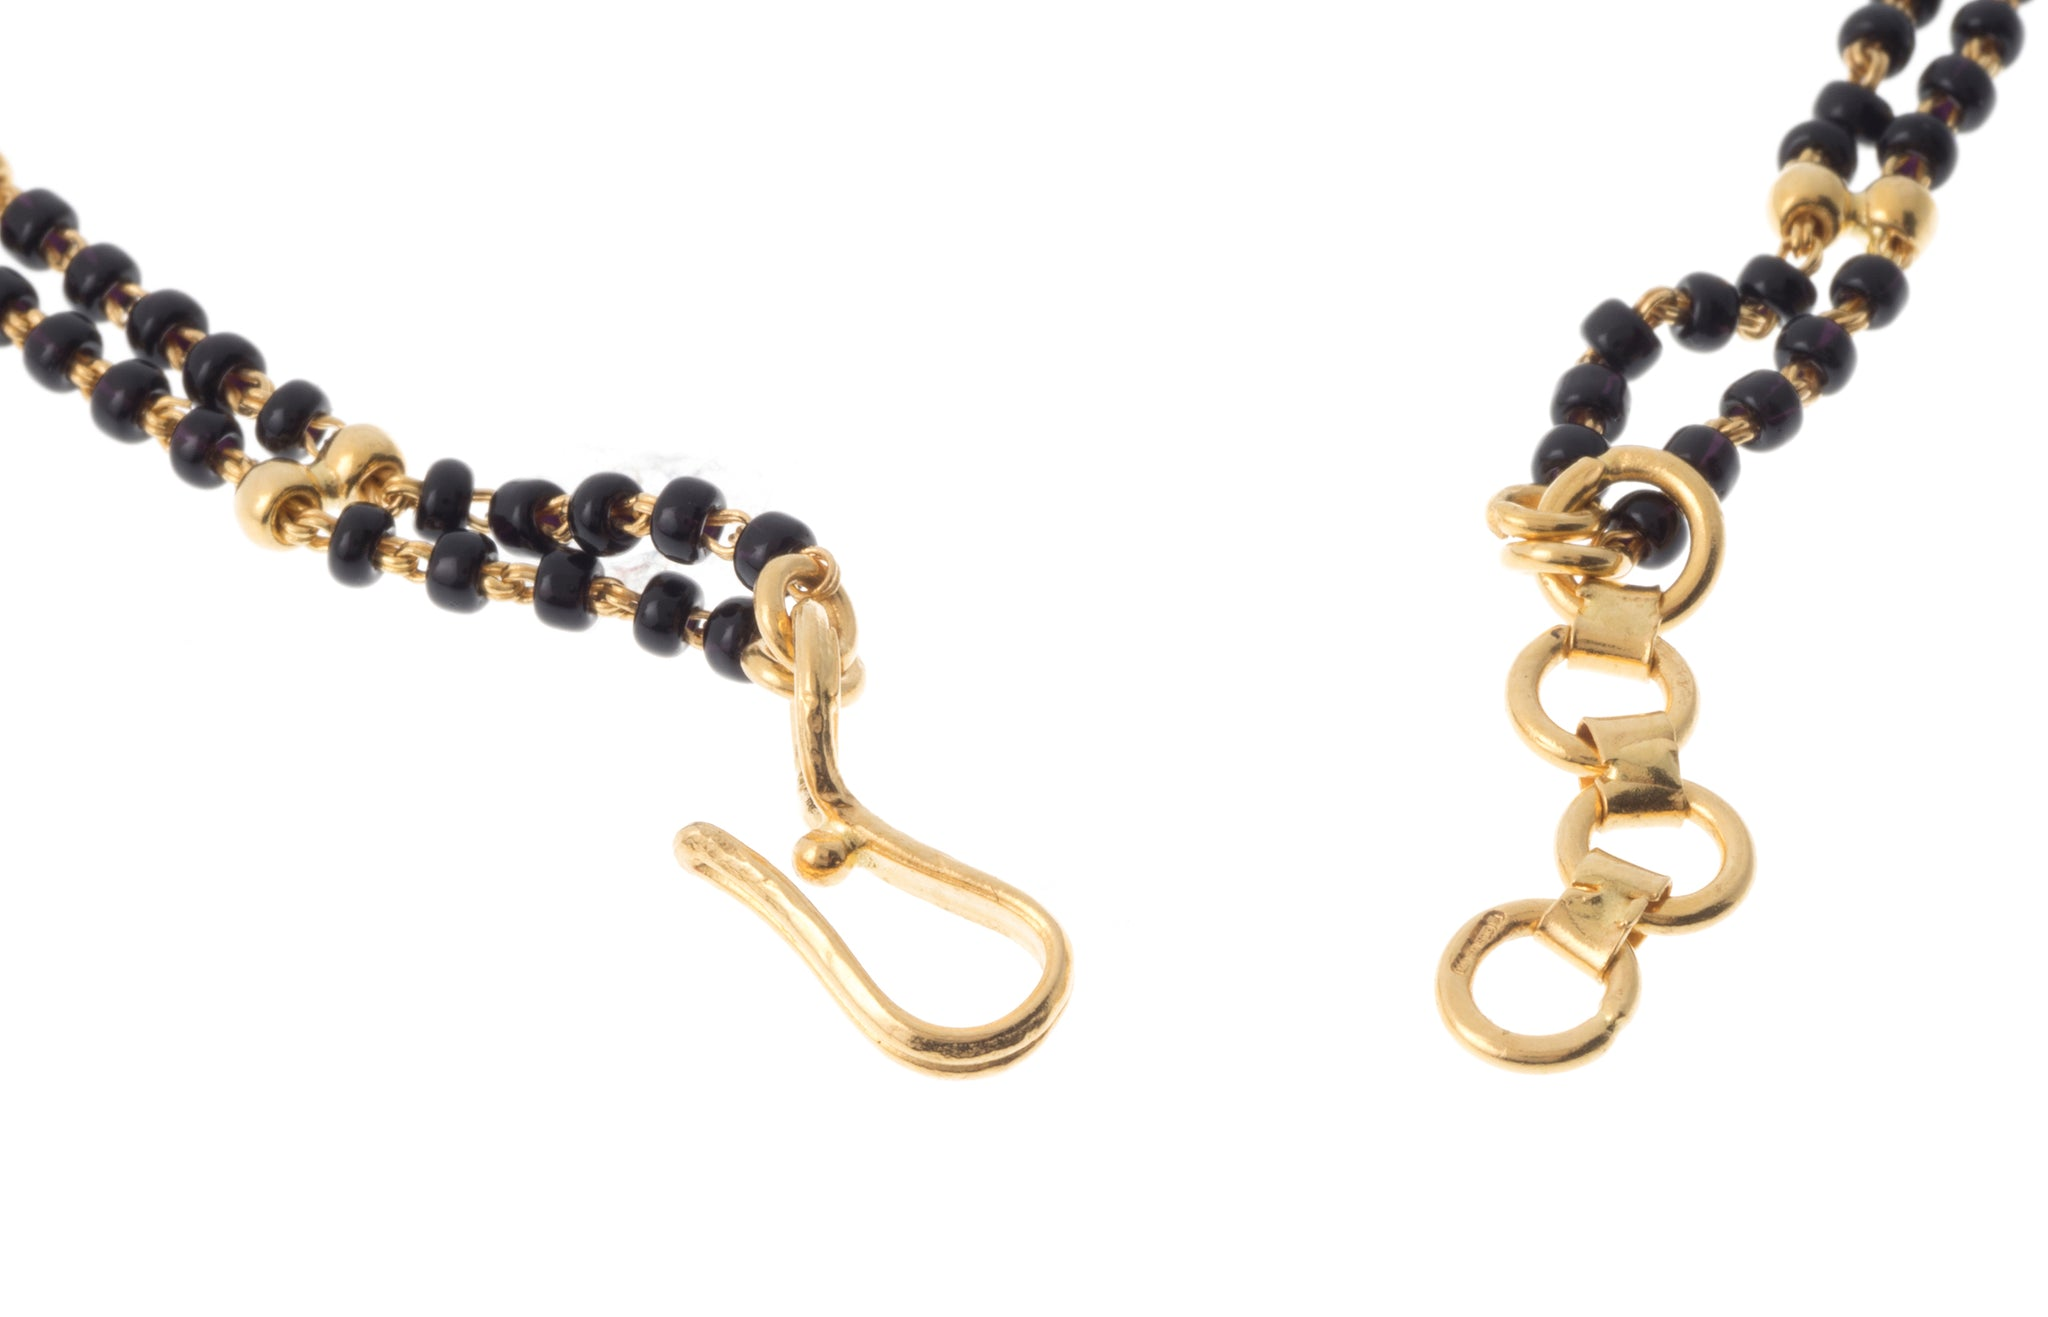 22ct Gold and Black Bead Bracelet (4.8g) LBR-7274